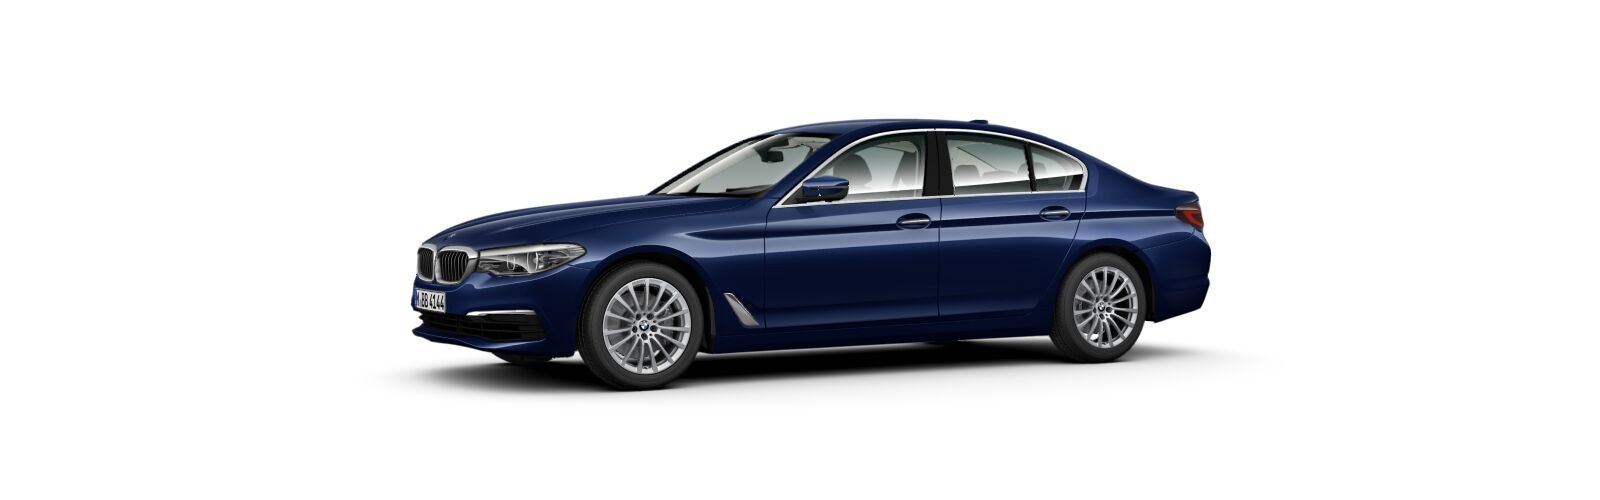 Bmw 5 Series And Touring Colours Guide And Prices Carwow